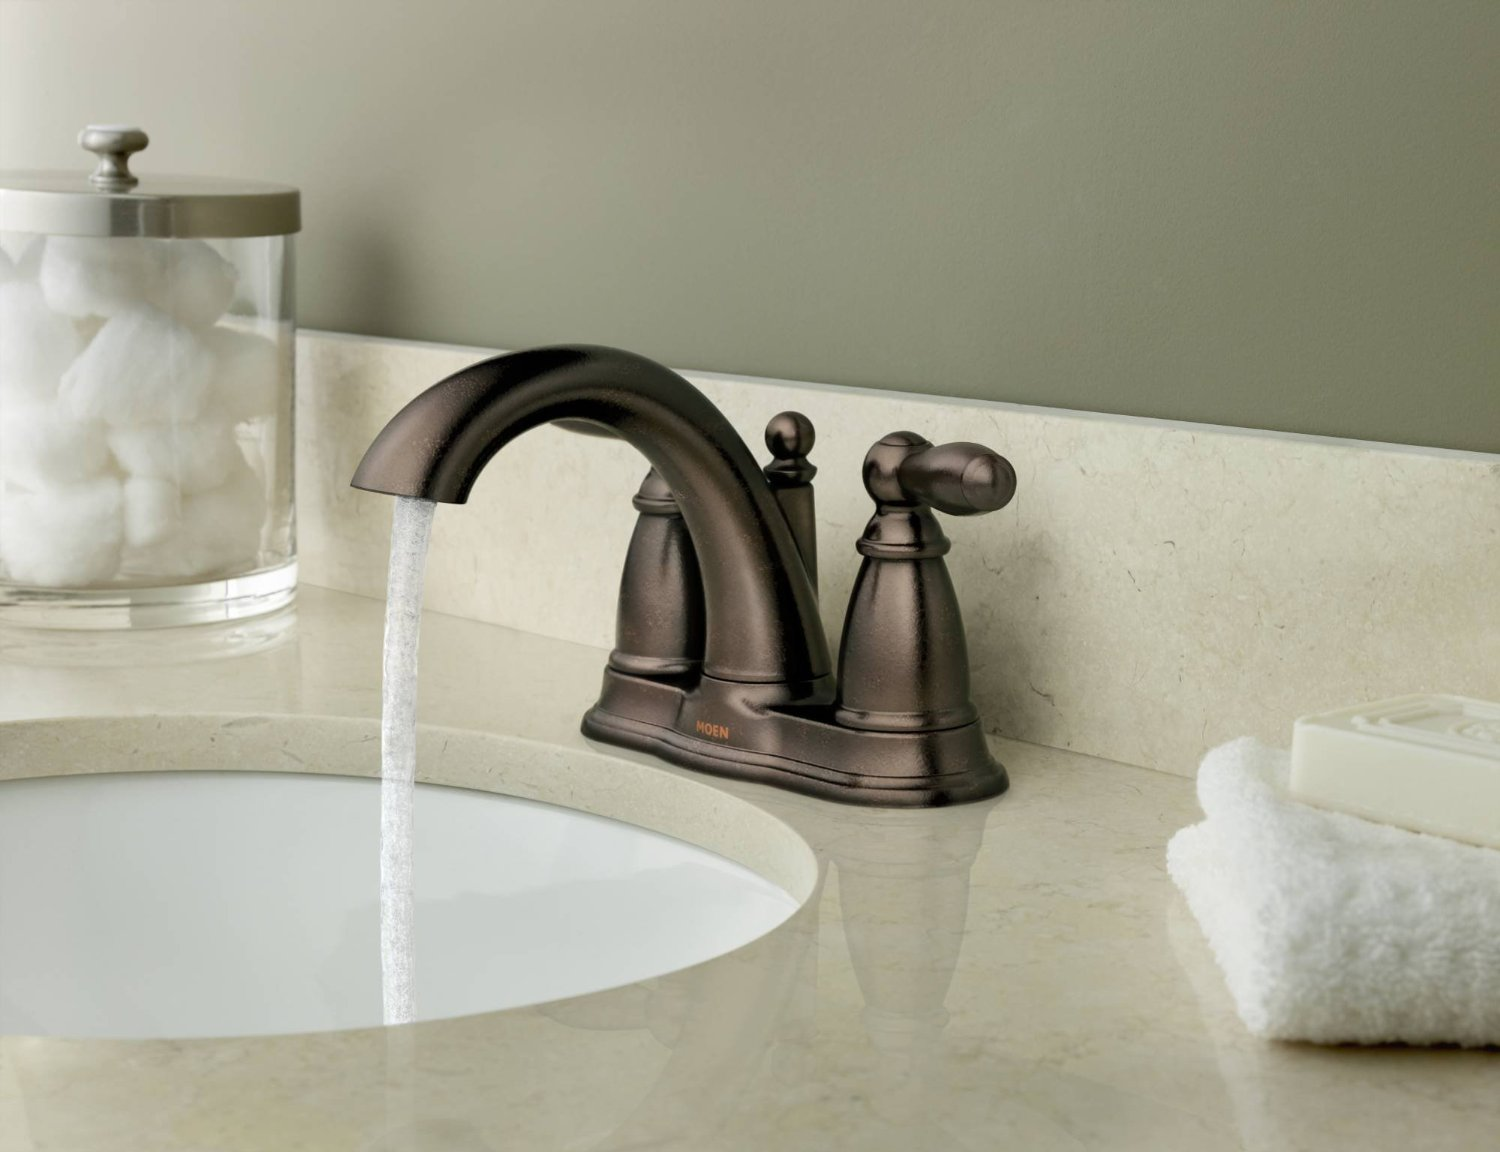 Bathroom Sinks And Faucets JSG Oceana Bathroom Sinks - 005-016-300 ...